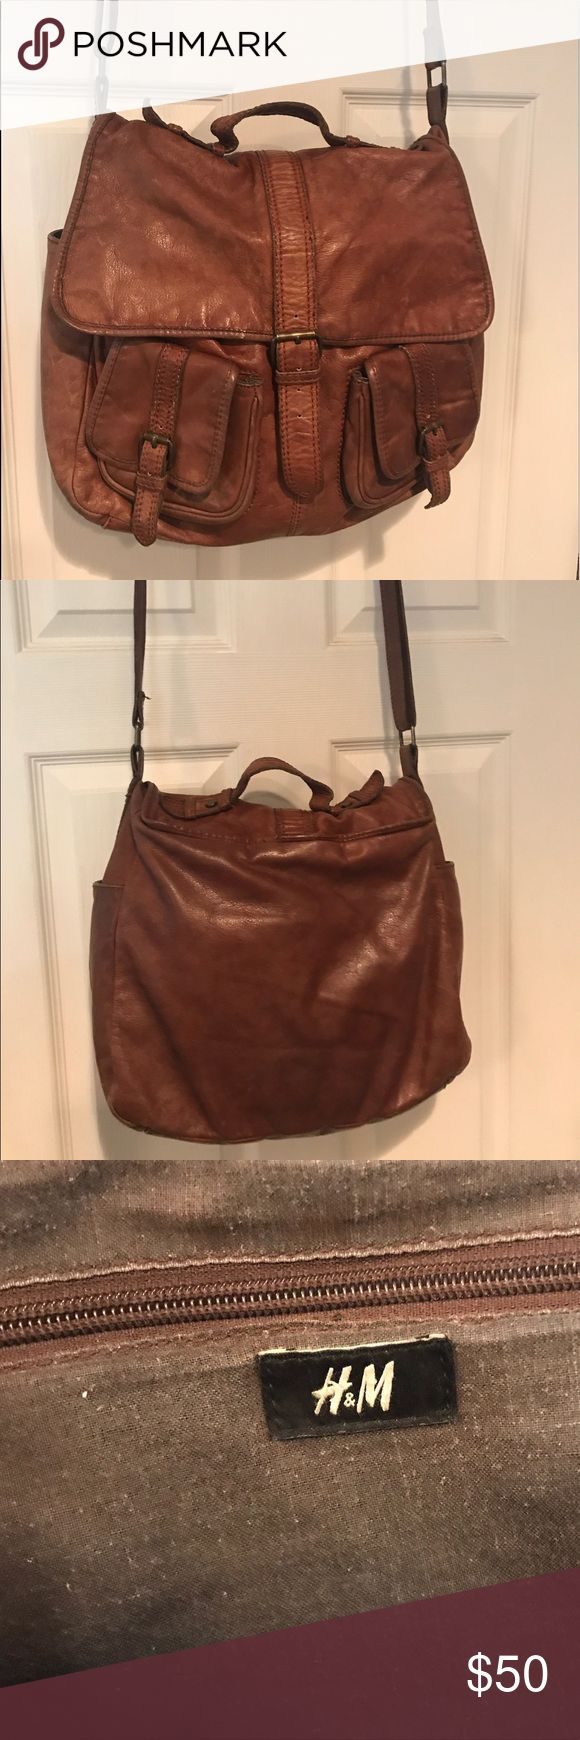 H&M Brown leather cross body purse This brown leather H&M purse is perfect for the summer. It is over the shoulder which makes a life on the go easier. Plus it is an absolute adorable style that has always been a fashionable statement. The inside is clean with a zipper pocket and more. The shoulder strap has a belt look and is adjustable. The top of the bag loops over which keeps your valuables safe inside from theft. It has enough room for an iPad which can be great for school, day to day…